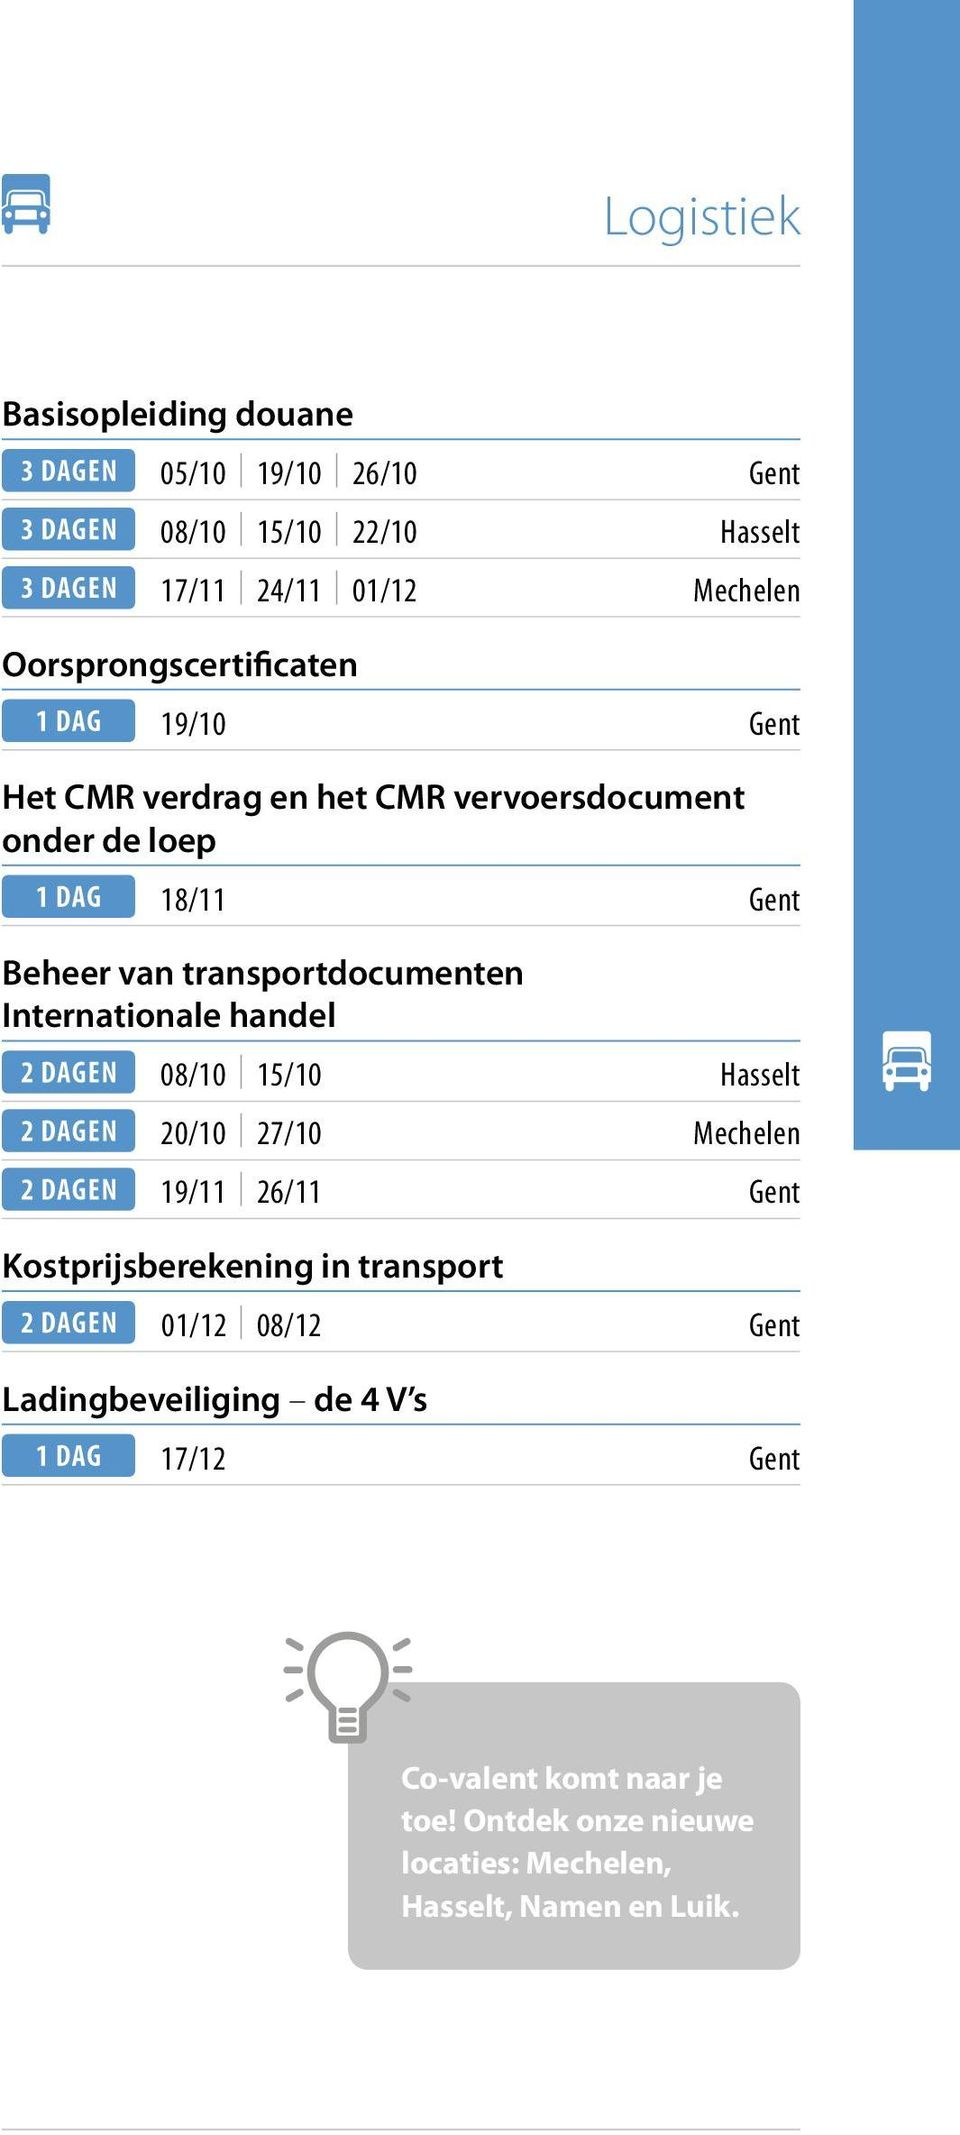 transportdocumenten Internationale handel 08/10 15/10 Hasselt 20/10 27/10 Mechelen 19/11 26/11 Gent Kostprijsberekening in